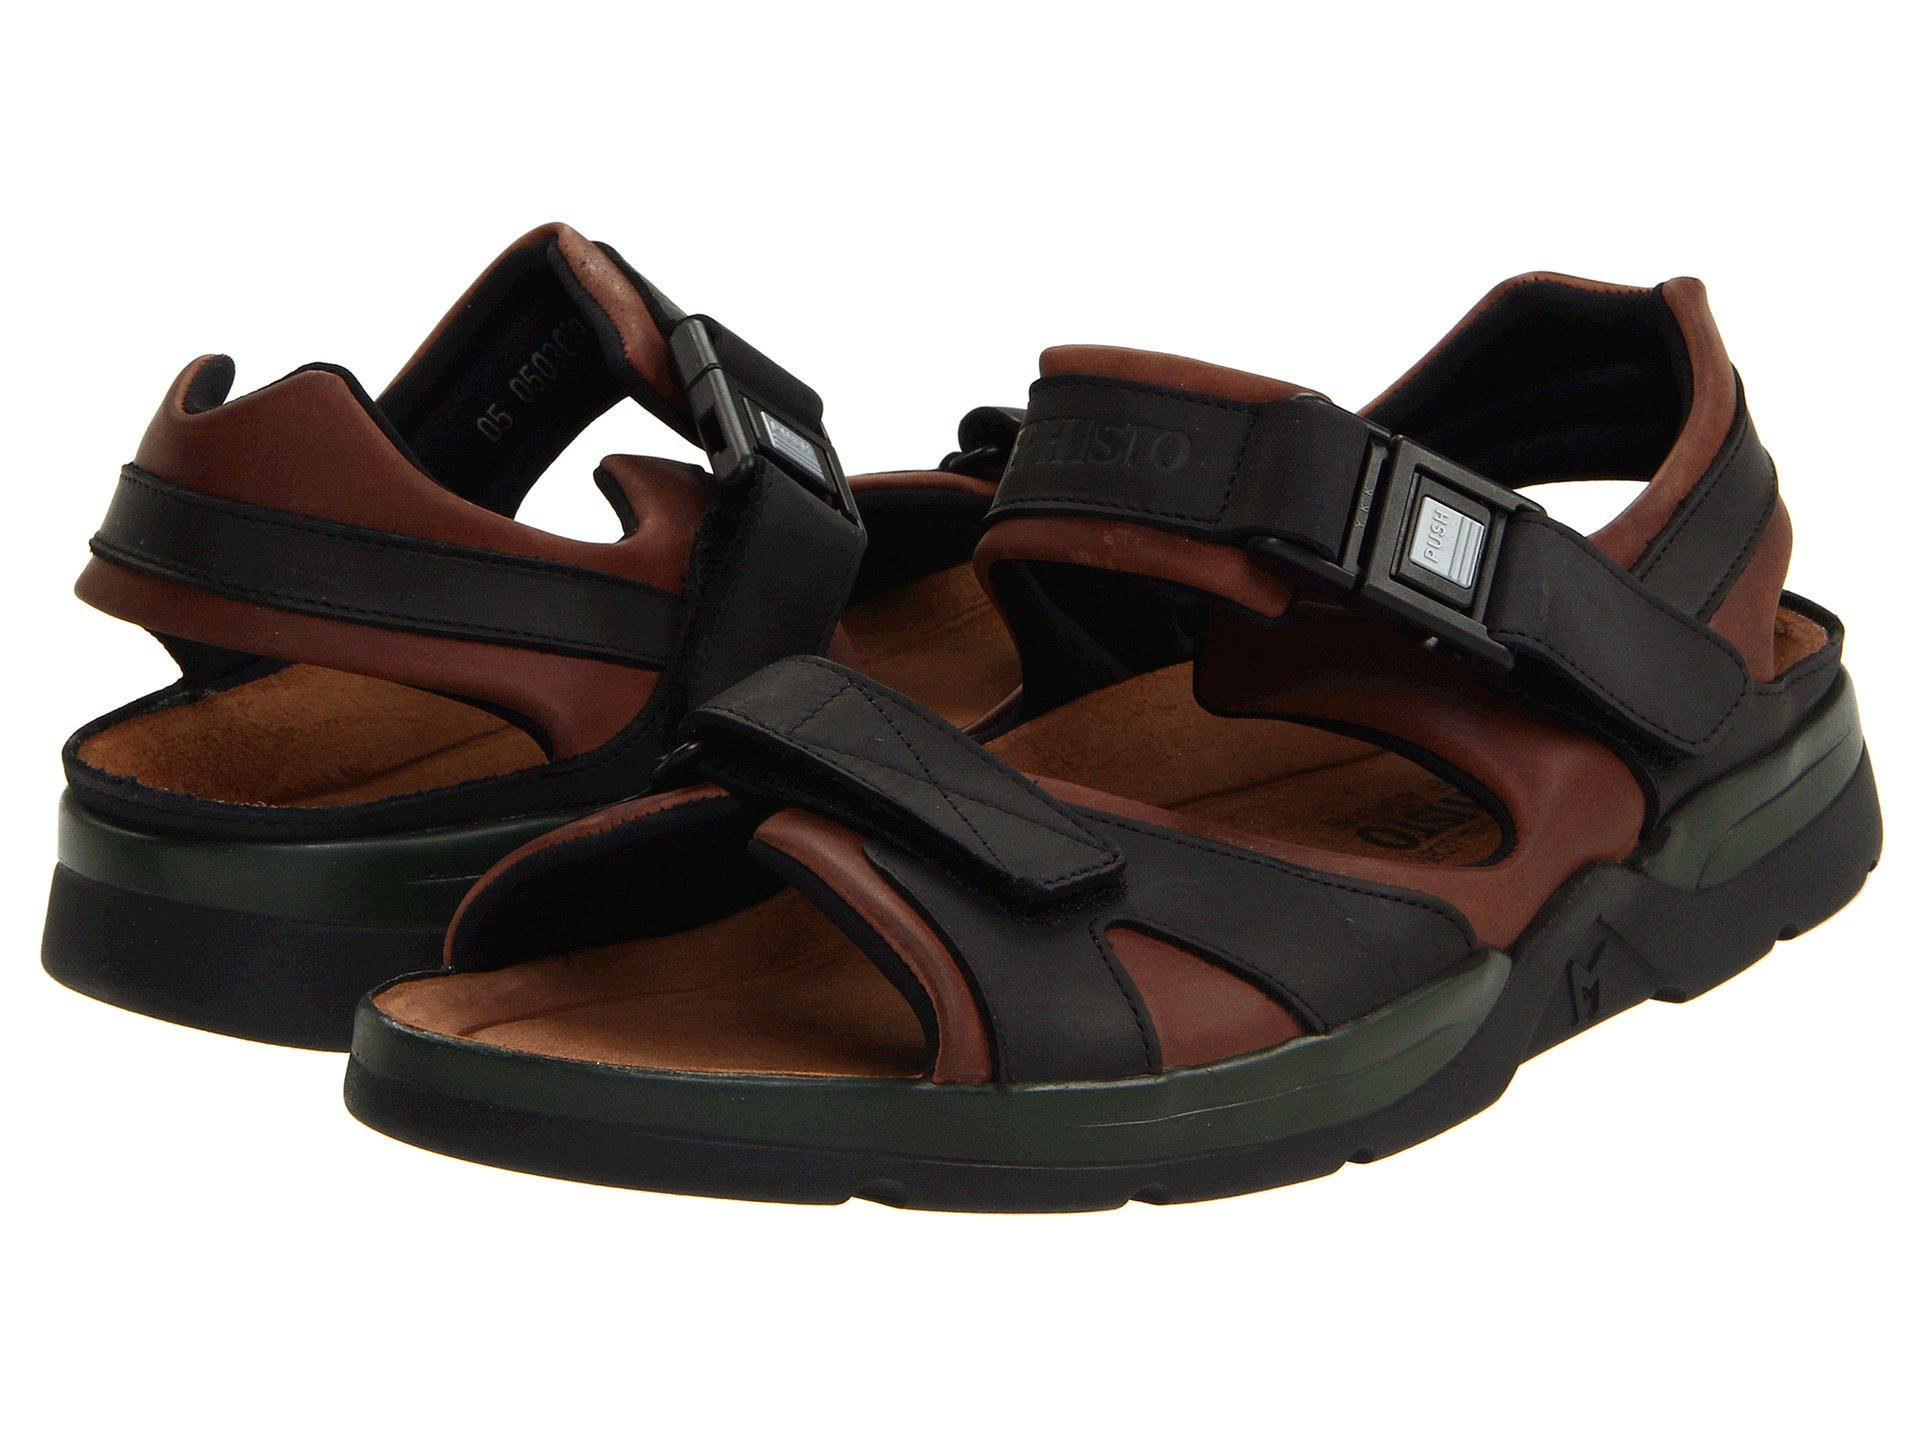 1f134767c93 Men's Mephisto Shoes + FREE SHIPPING   Zappos.com